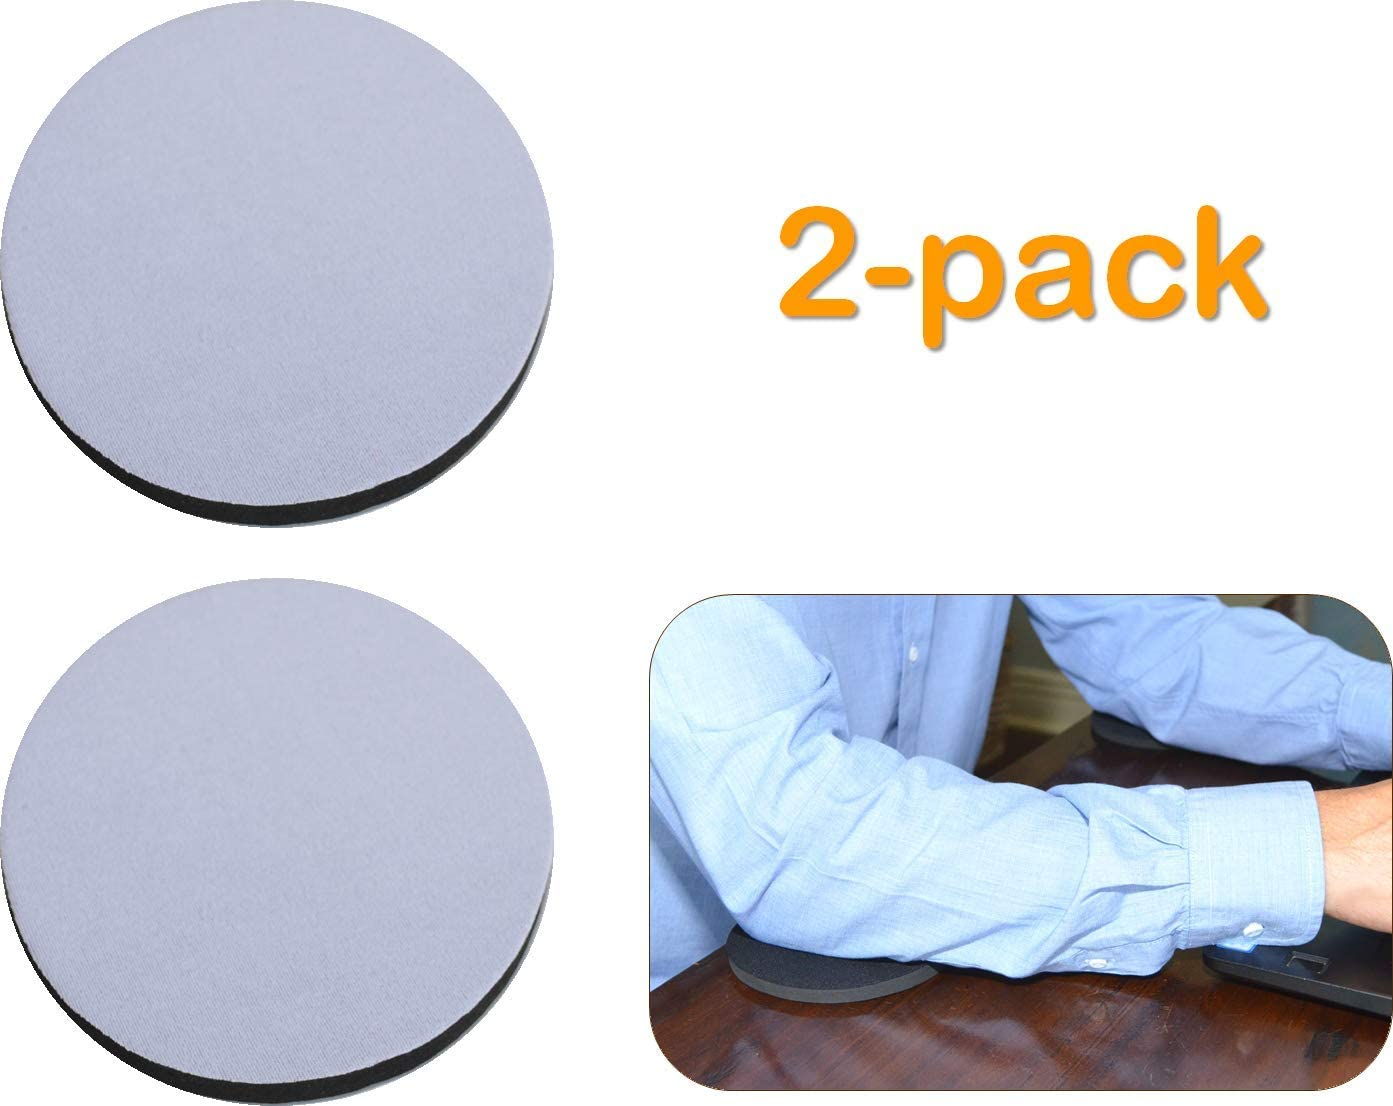 """Desk Dots! Elbow, Arm & Wrist Rest Work & Gaming Surface Cushioning Pads for Pressure Point & Pain Relief; Made of Neoprene, Soft Nylon Surface; 4.5"""" Wide, 0.3"""" Thick; 2-Pack! (Light Gray)"""